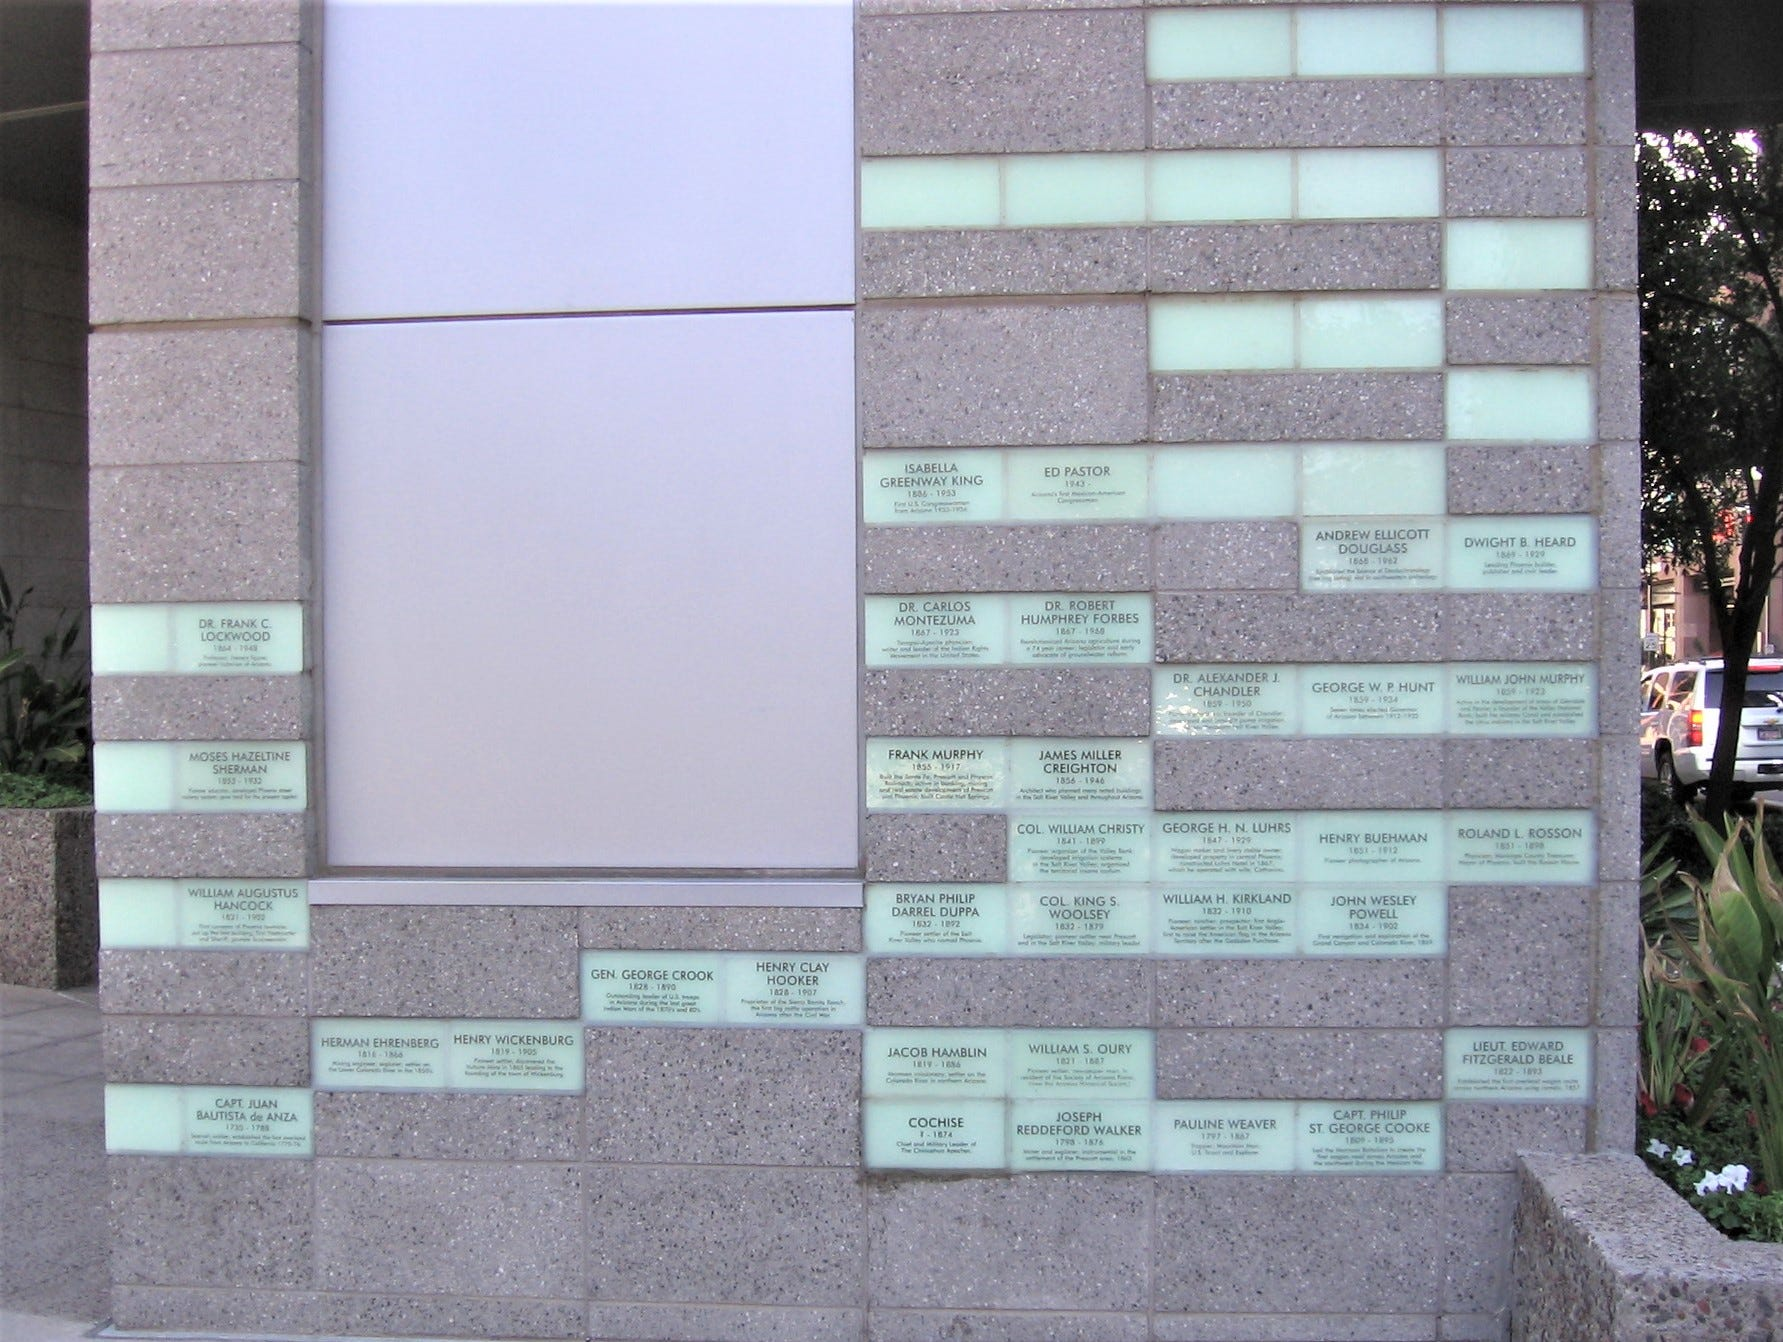 Plaques at Patriot Square.